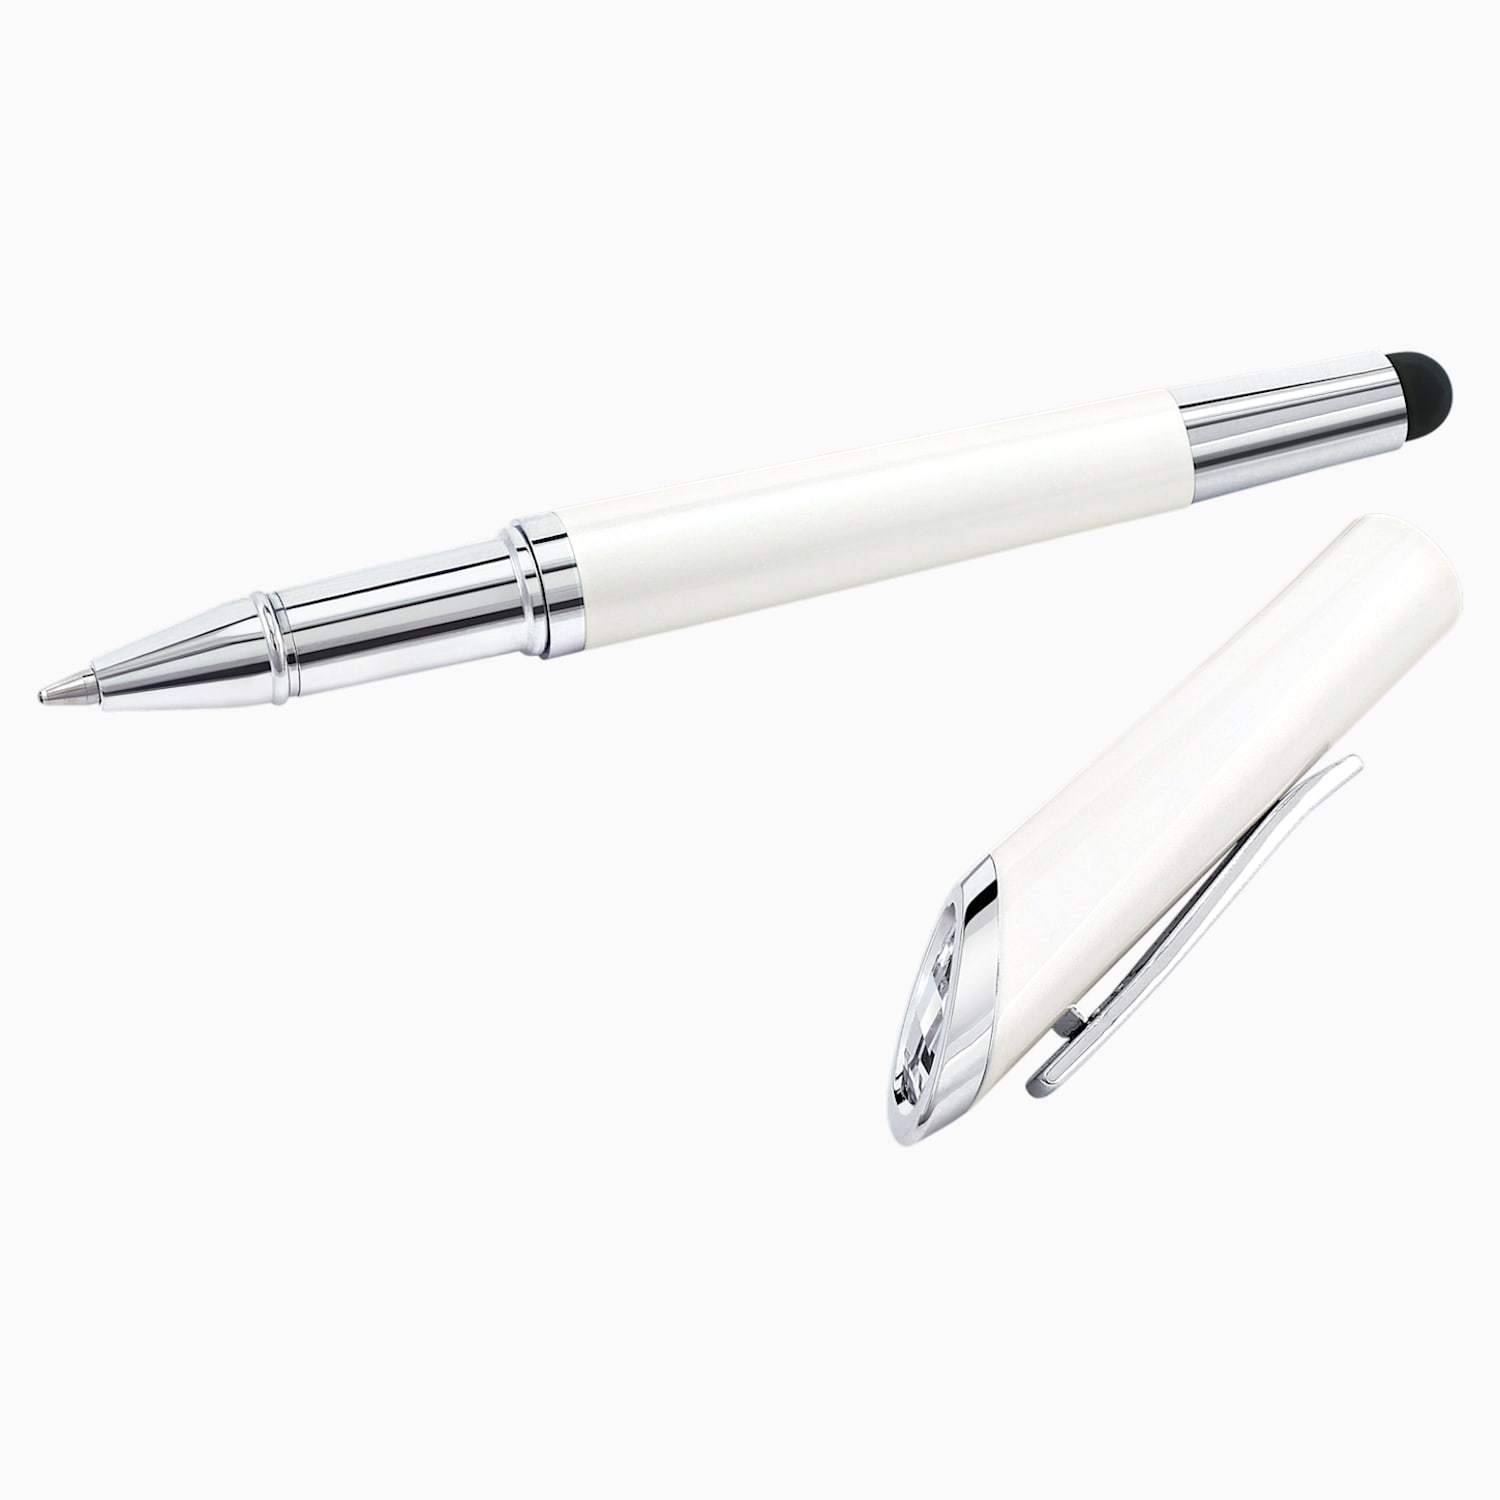 HIGH QUALITY CRYSTAL 2 IN 1 STYLUS BALLPOINT  PEN MADE WITH SWAROVSKI ELEMENTS